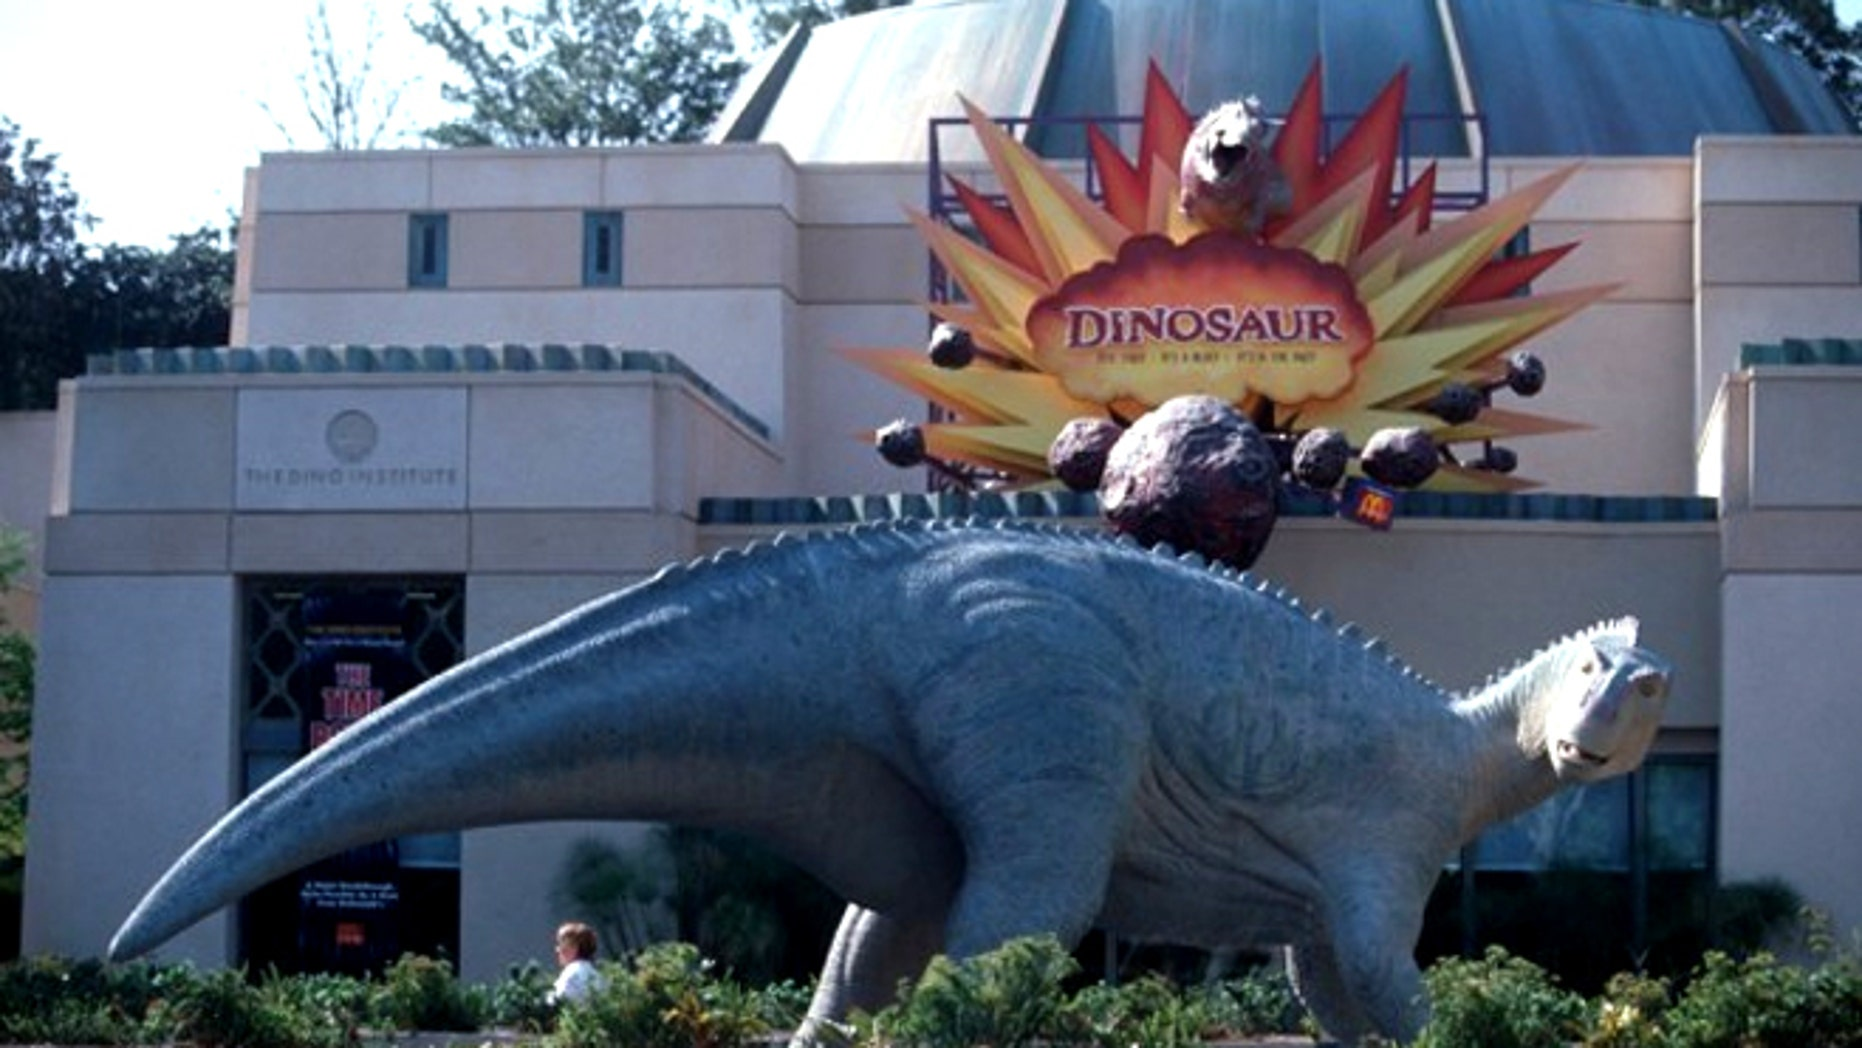 A Walt Disney World visitor with her grandson found a loaded gun on her seat on the Dinosaur ride at Animal Kingdom.